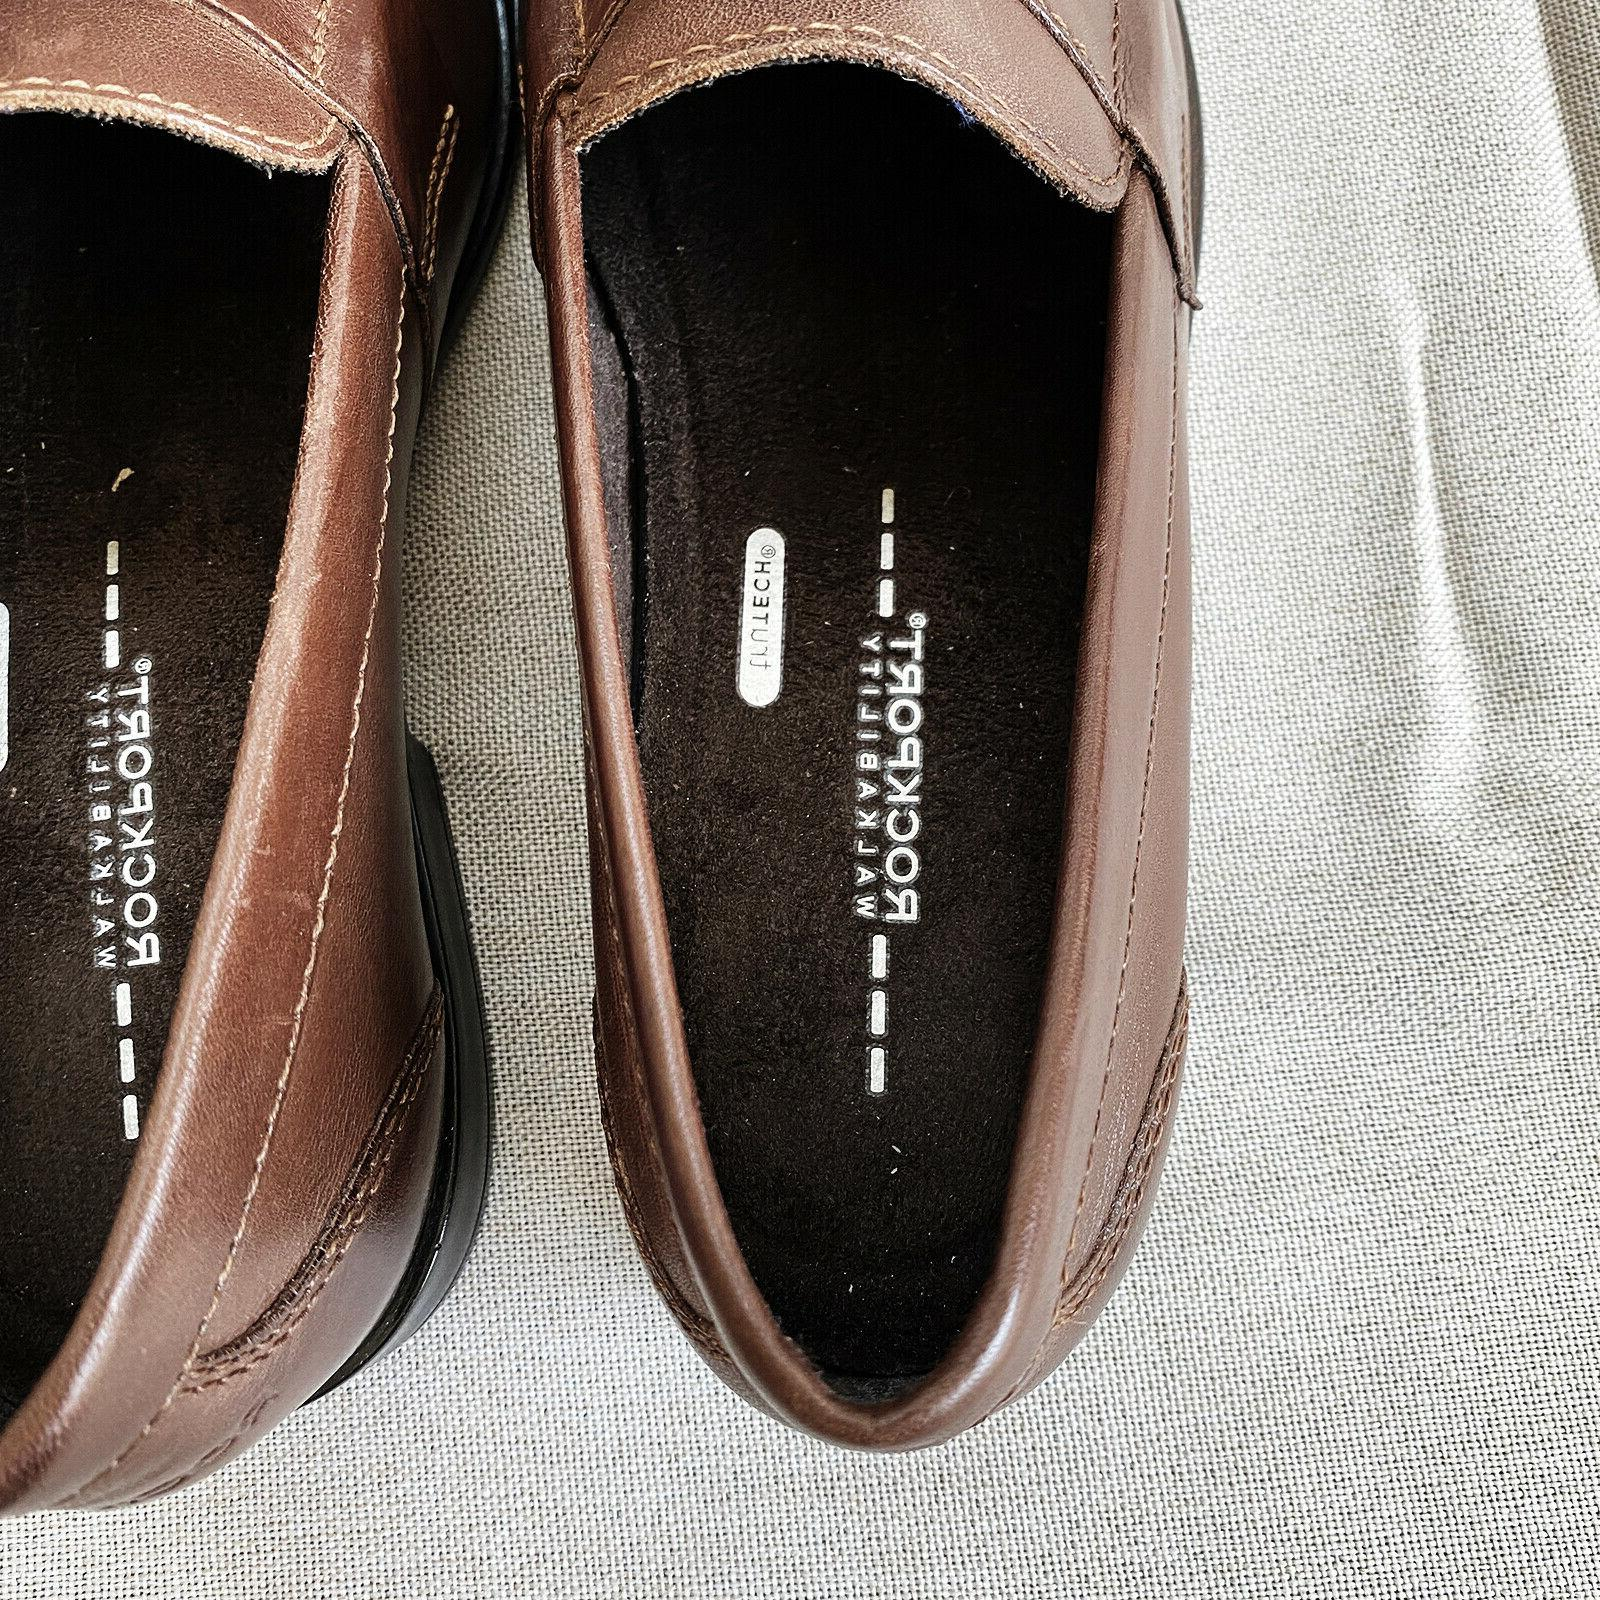 Rockport Penny Shoes with defects